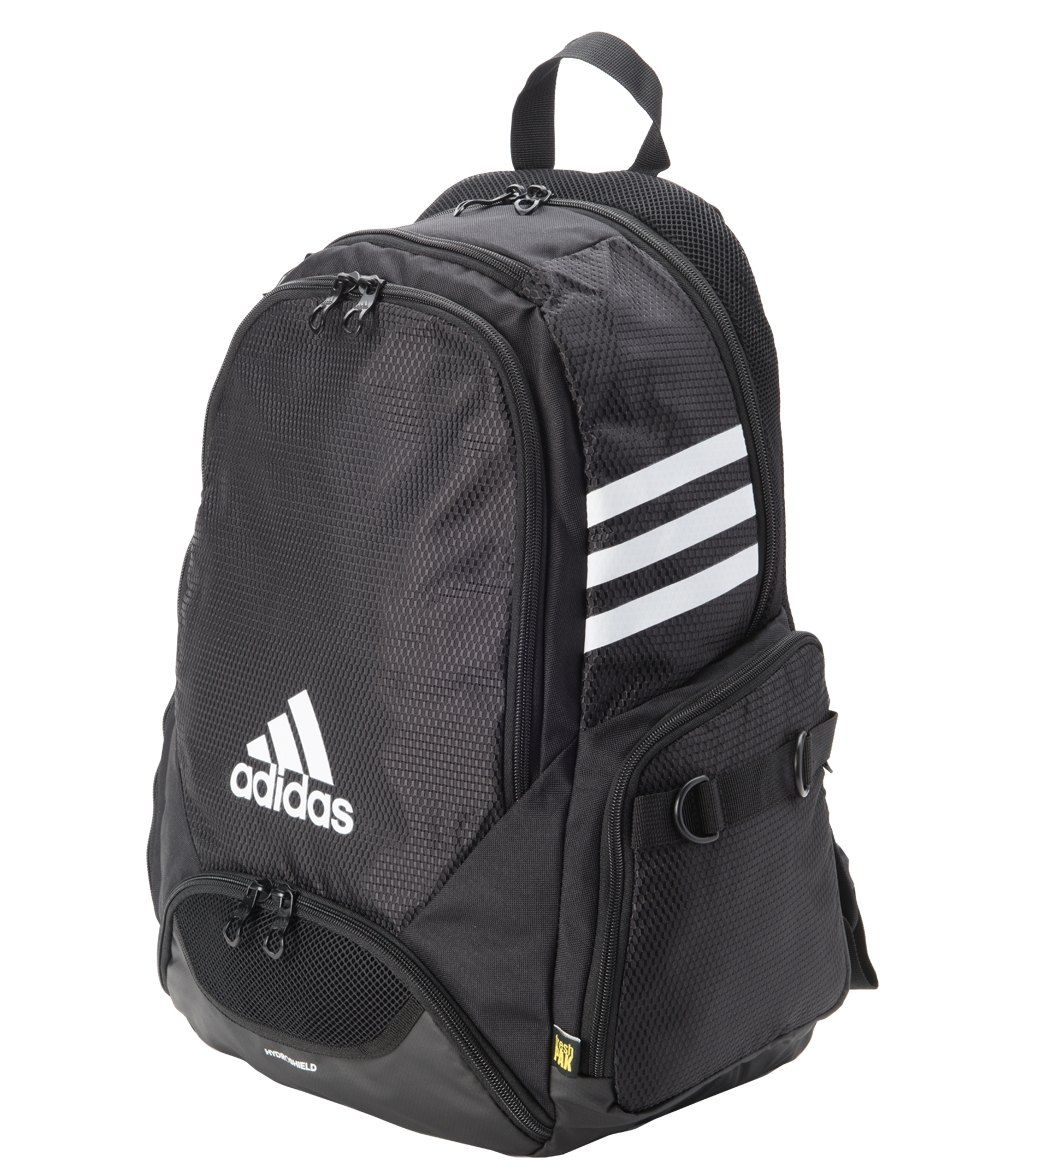 Adidas Pull Backpack at SwimOutlet.com - Free Shipping b824c4cd50154